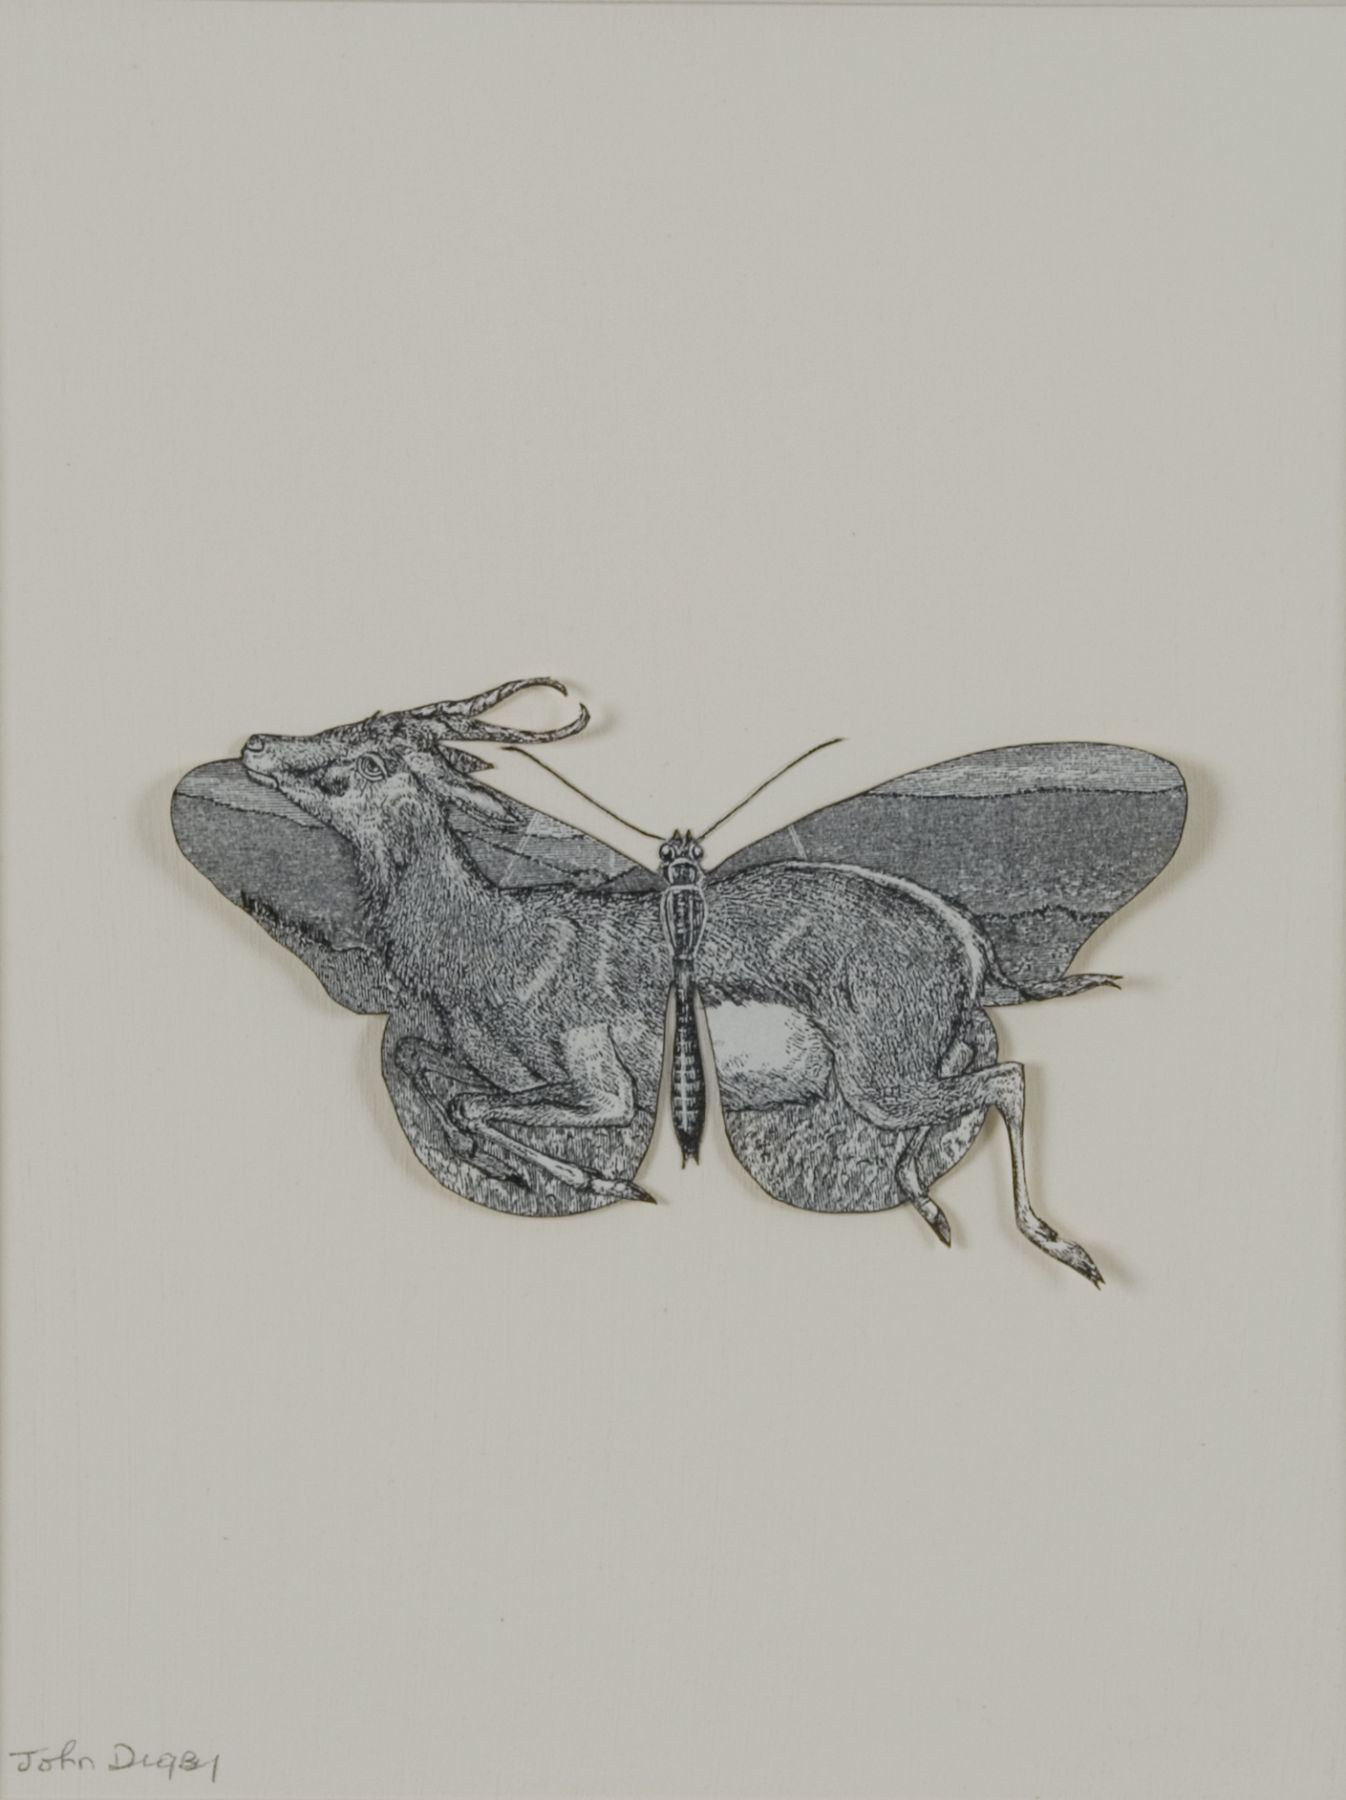 John Digby, Butterfly with Gazelle, 1987, collage with pen and ink, 16 x 12 inches